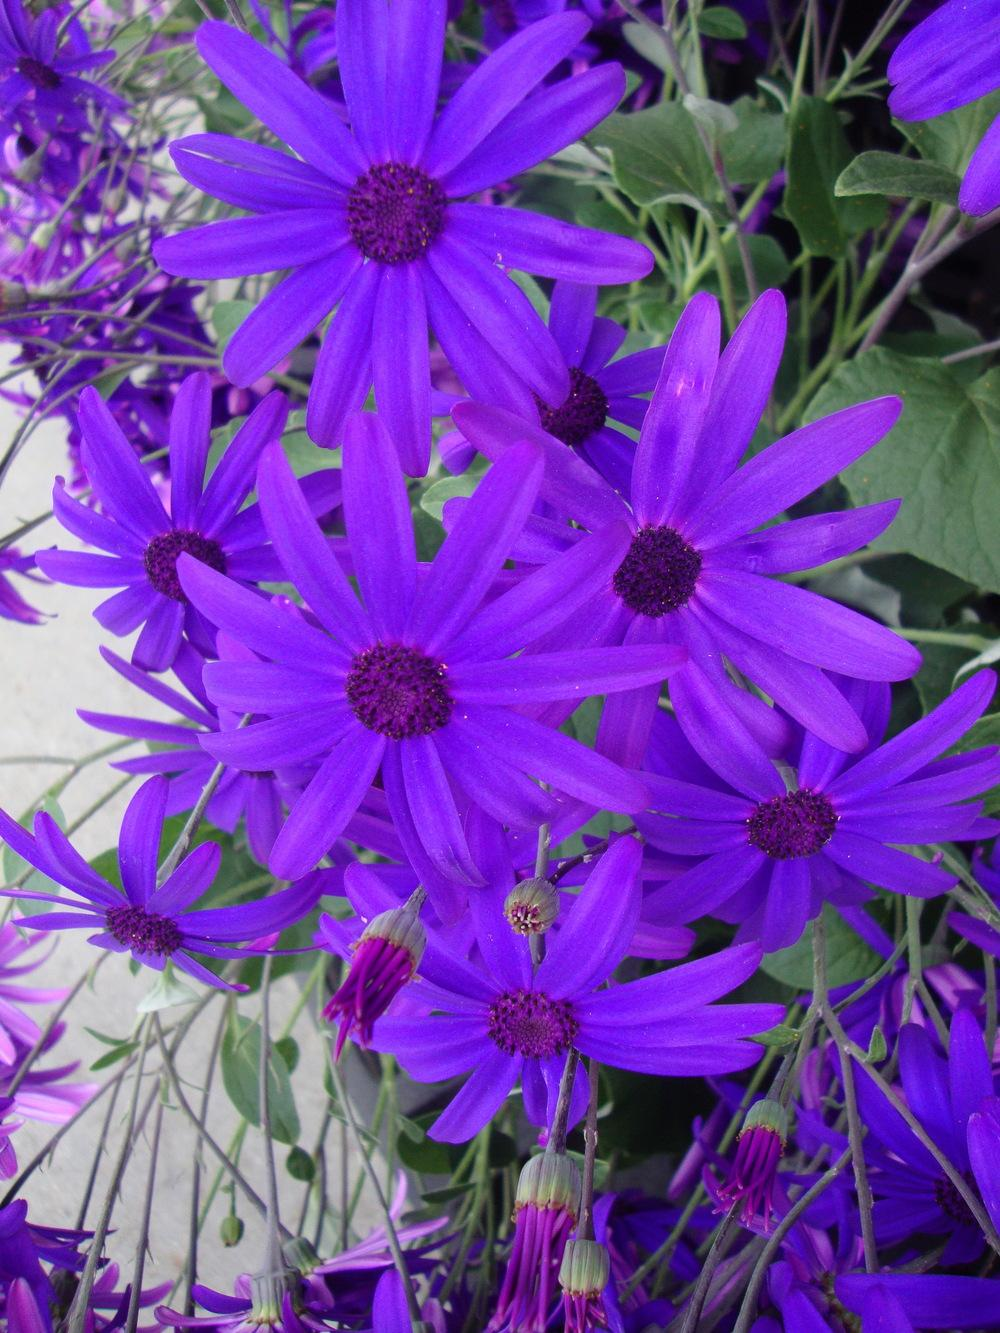 Photo of Florist's Cineraria (Pericallis Senetti® Blue) uploaded by Paul2032